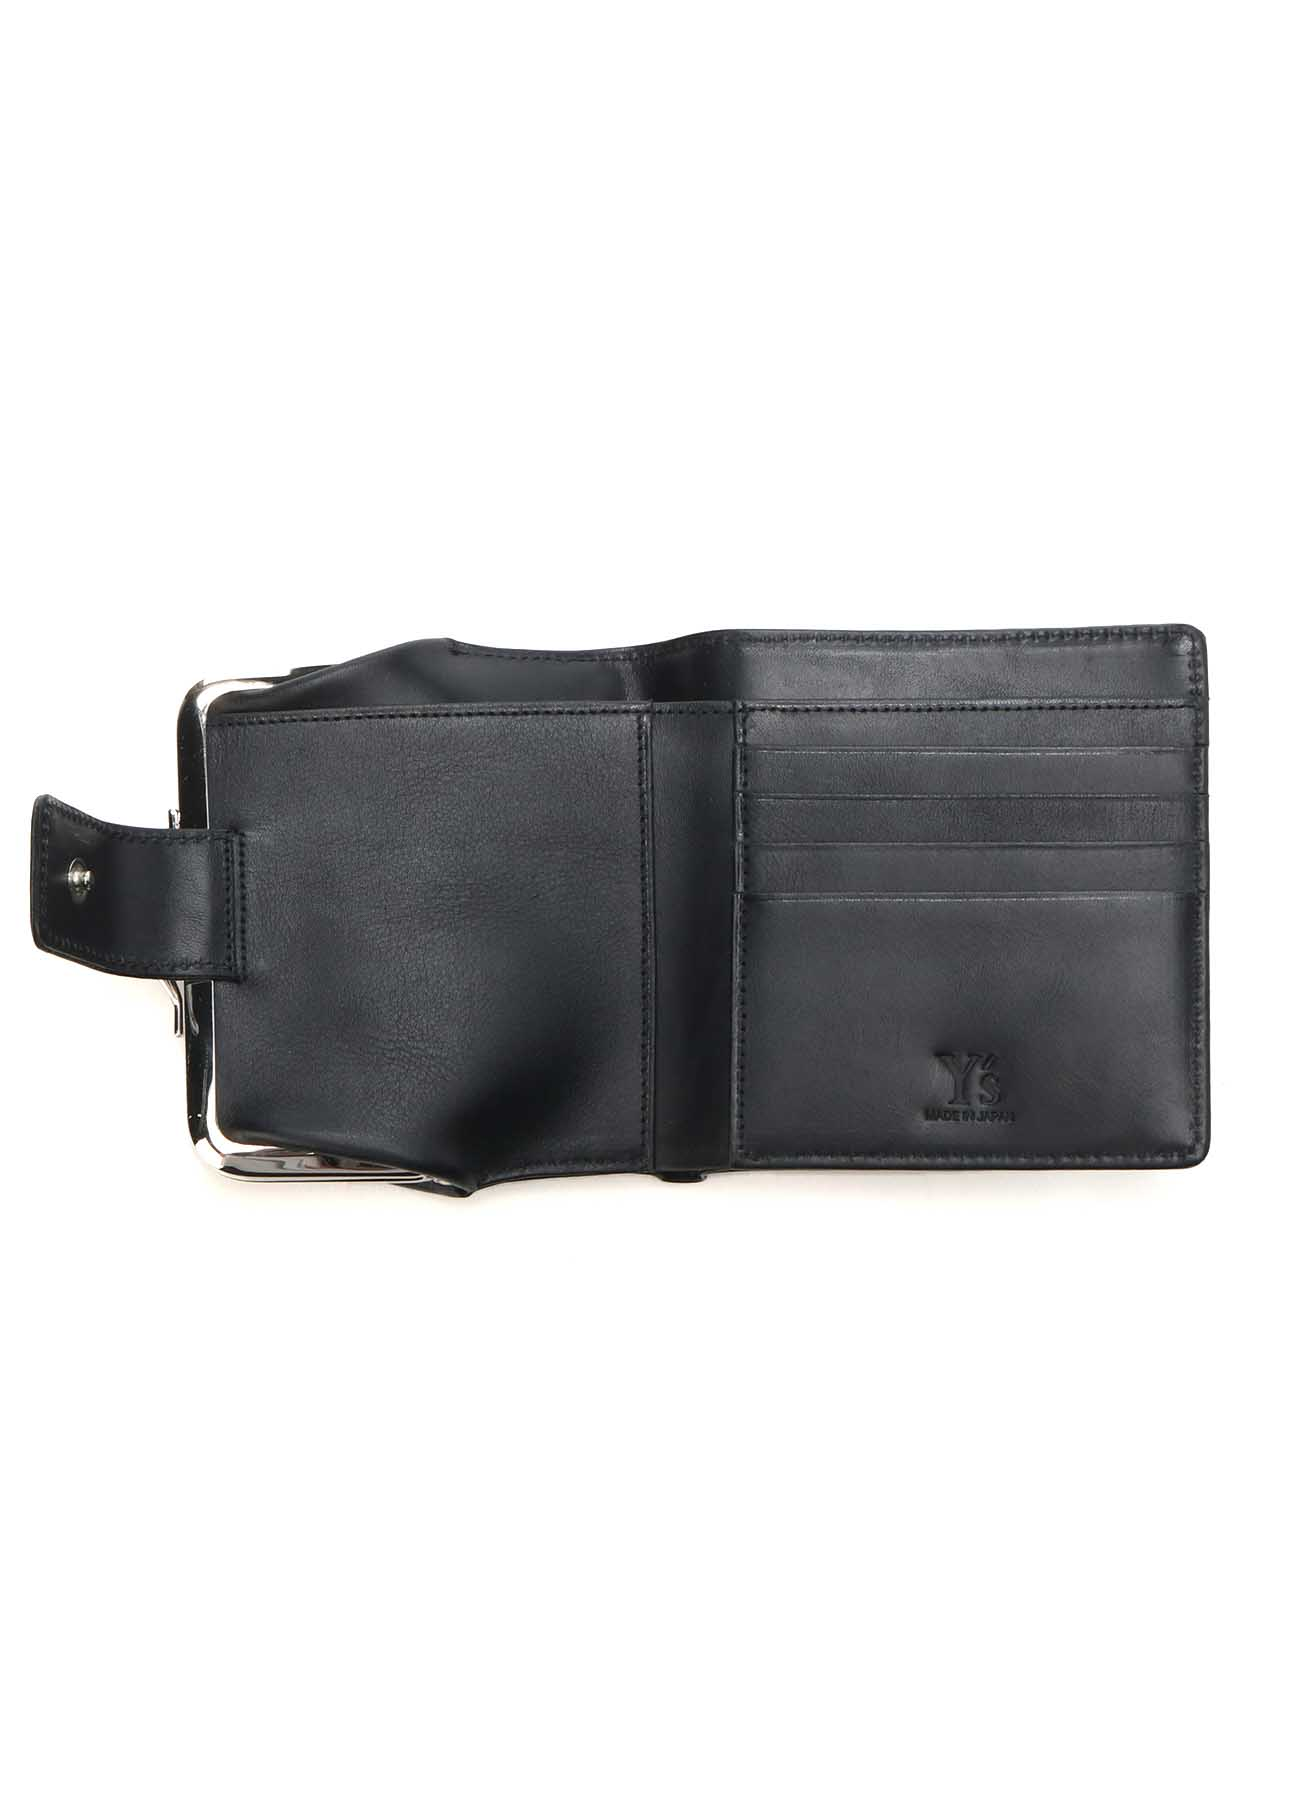 SEMI GLOSS LEATHER CLASP WALLET SMALL